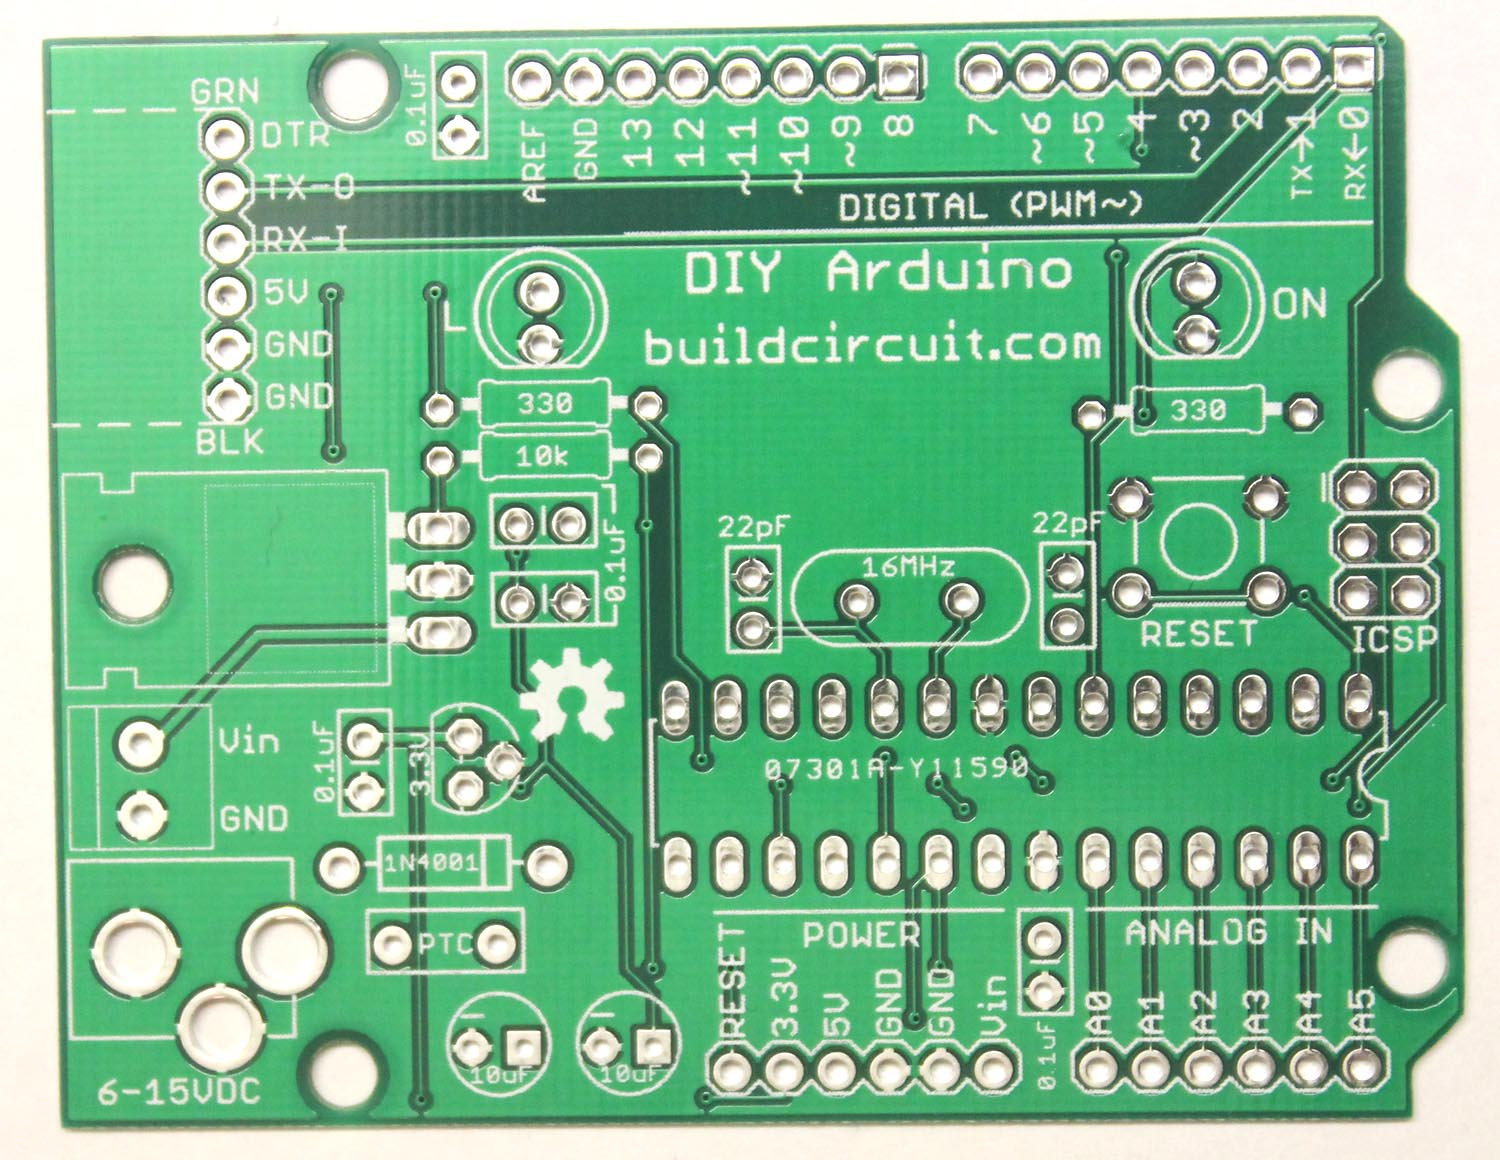 Diy Arduino Buildcircuit Electronics How To Use The Clap Switch Build Circuit